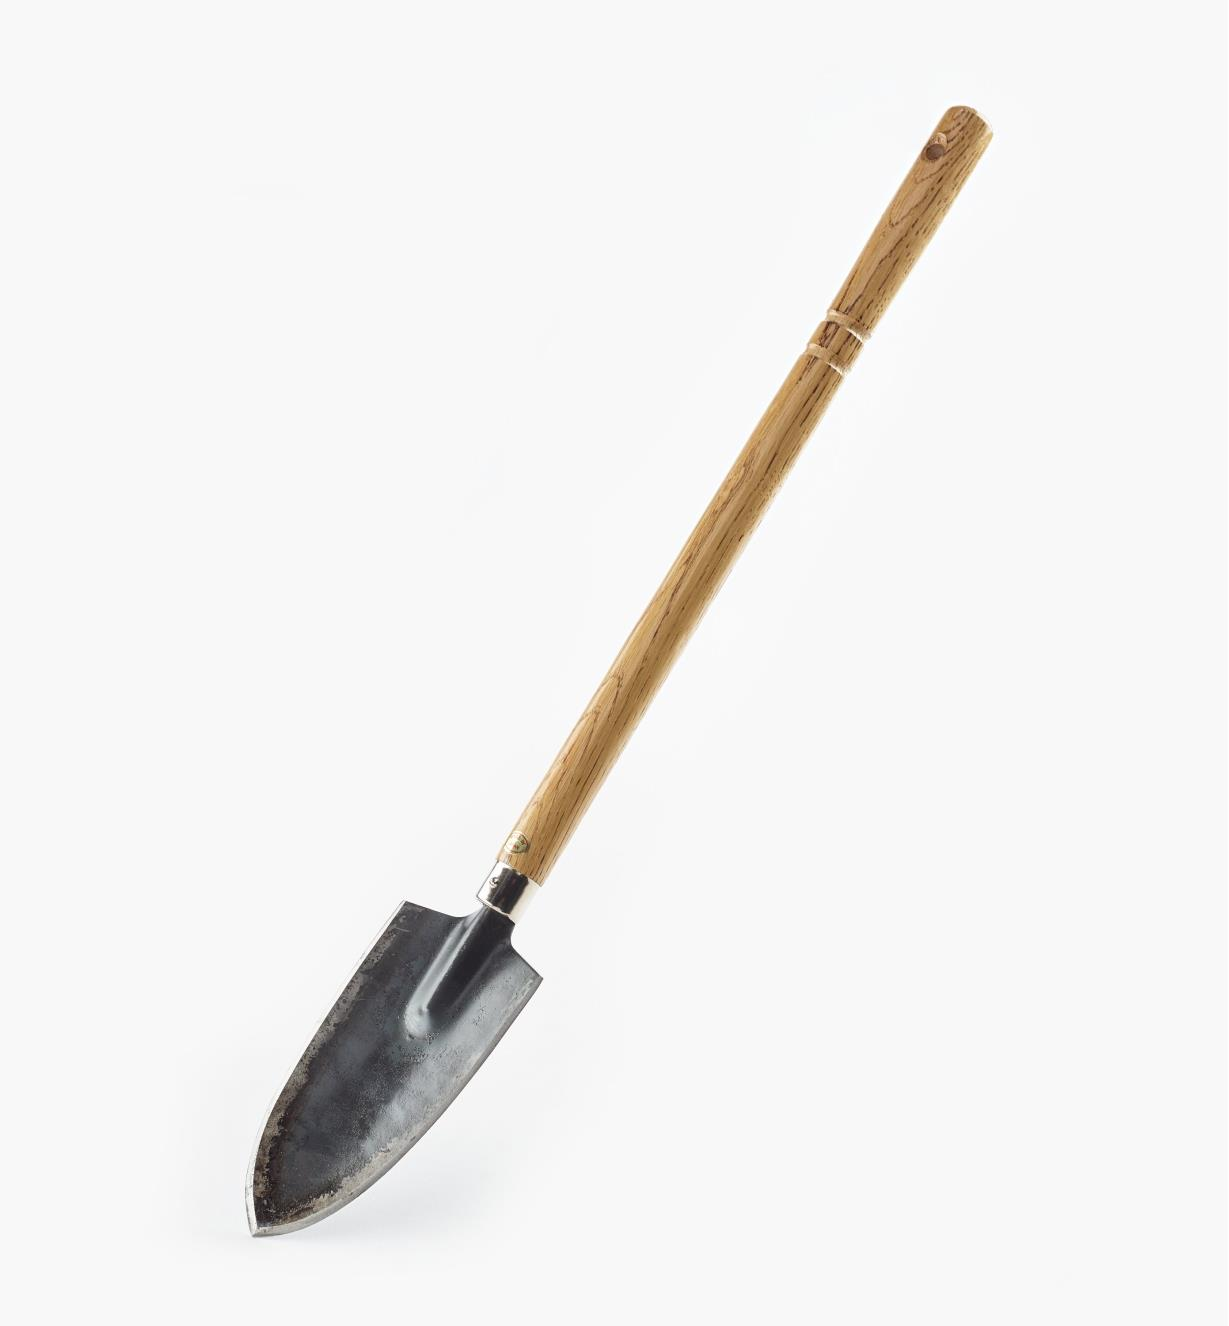 AB611 - Forged Japanese Trowel, Long